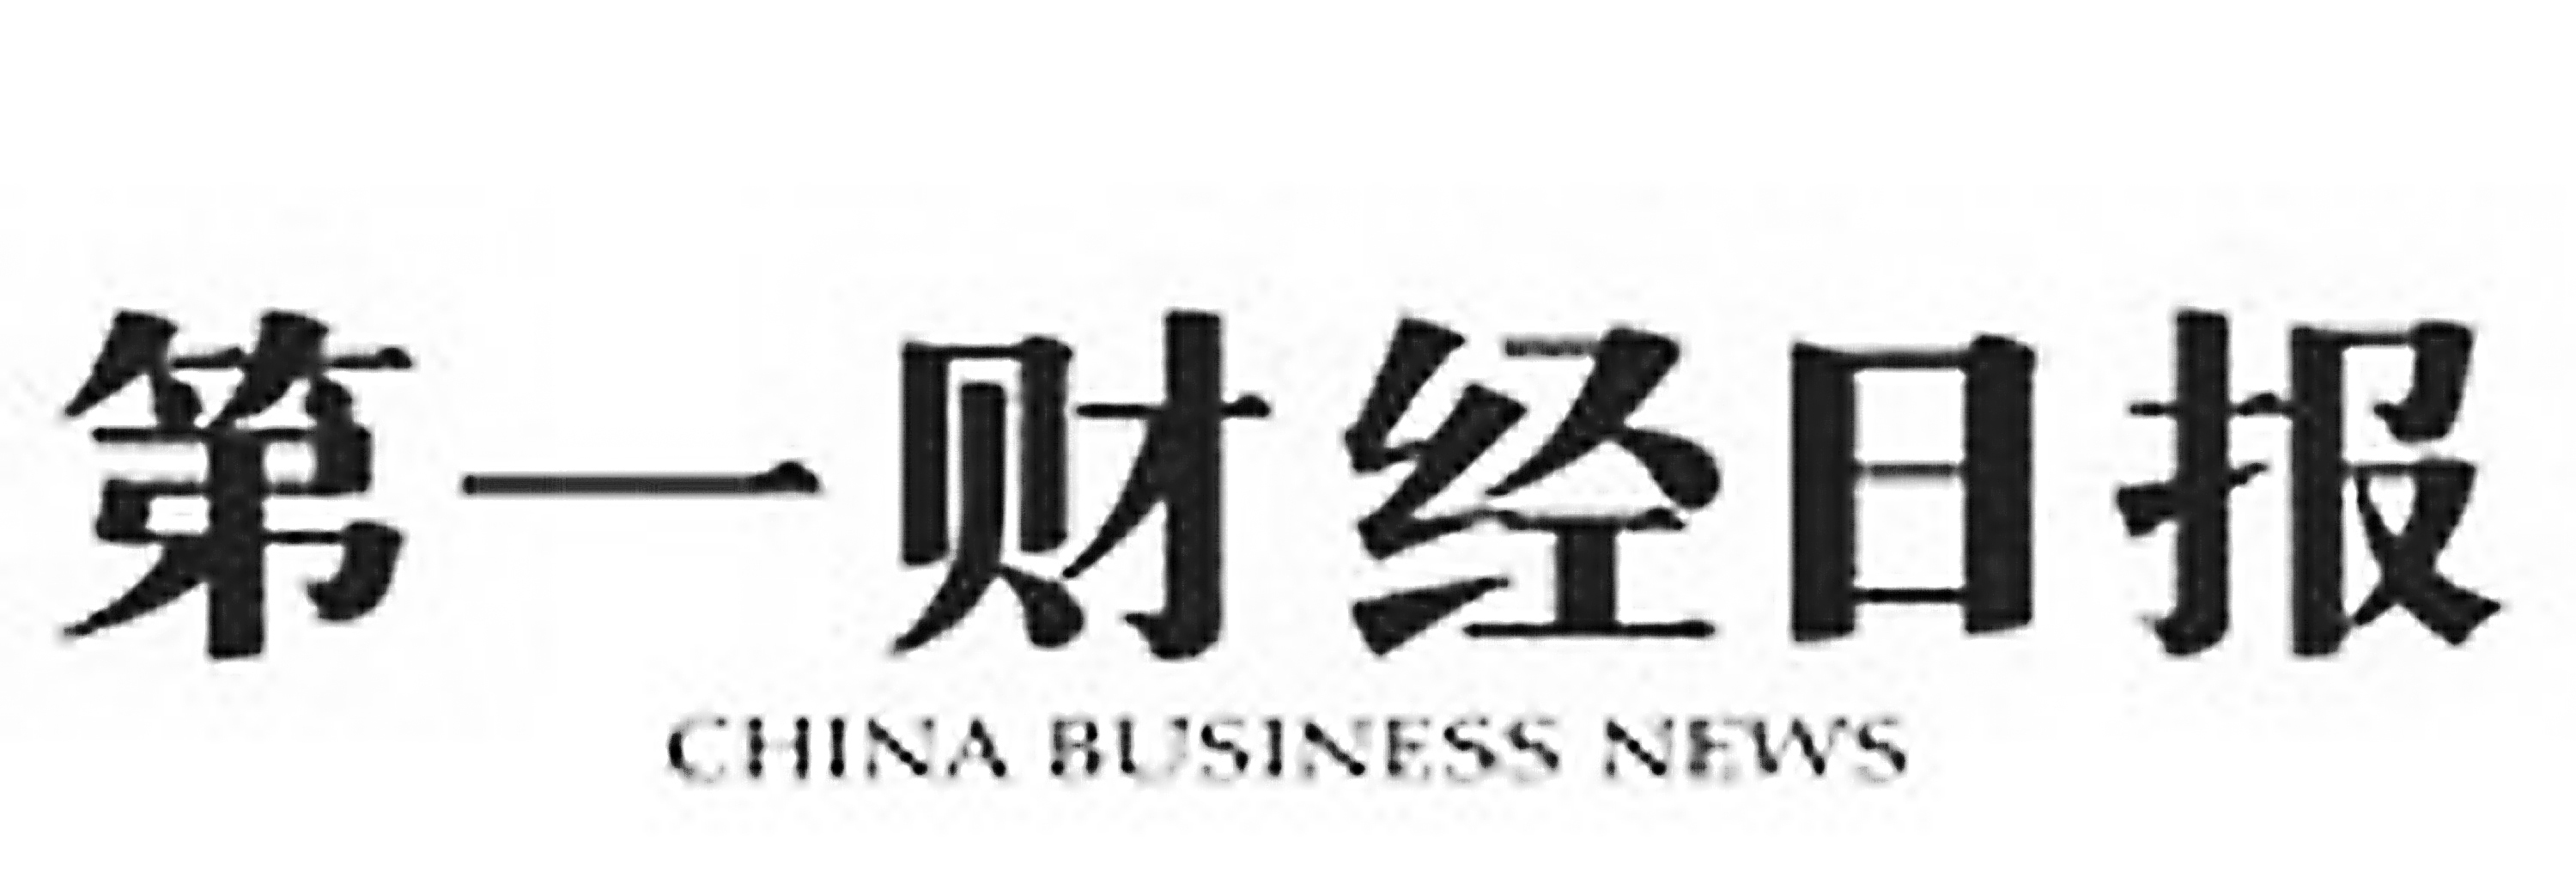 china-business-news